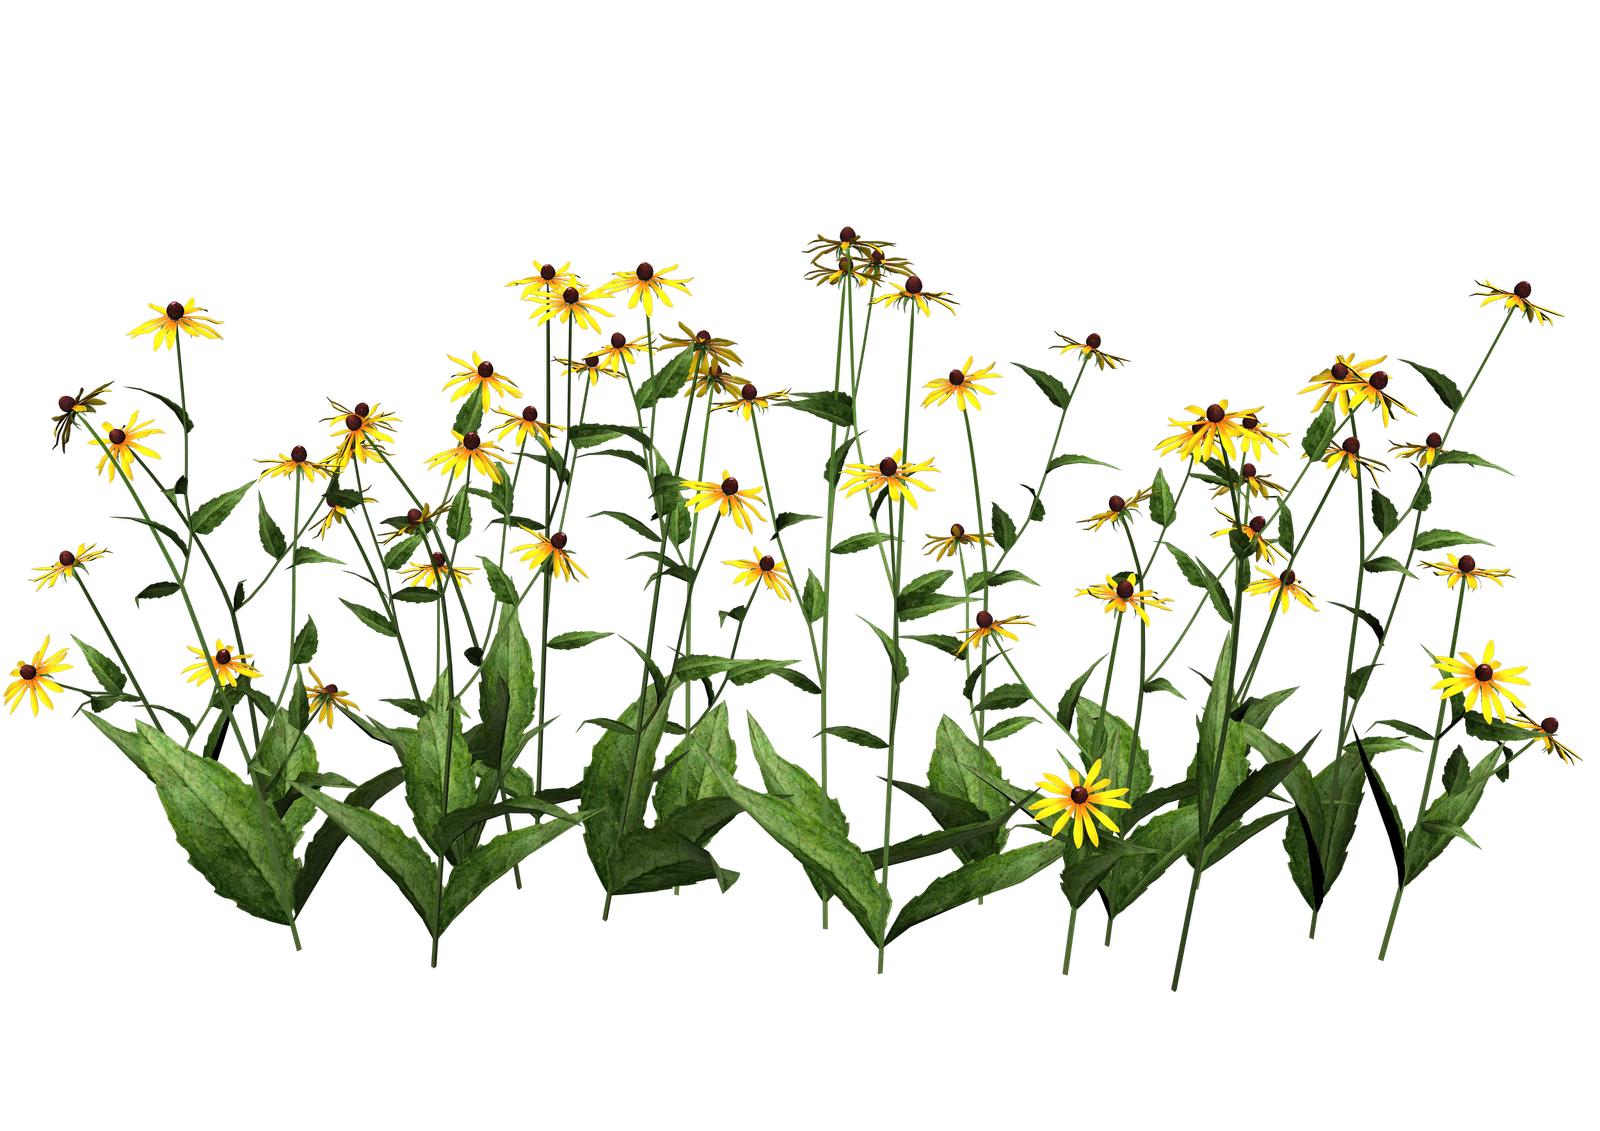 Free transparent png clipart picture royalty free Download-Plants-Transparent - Free Transparent PNG Images, Icons and ... picture royalty free